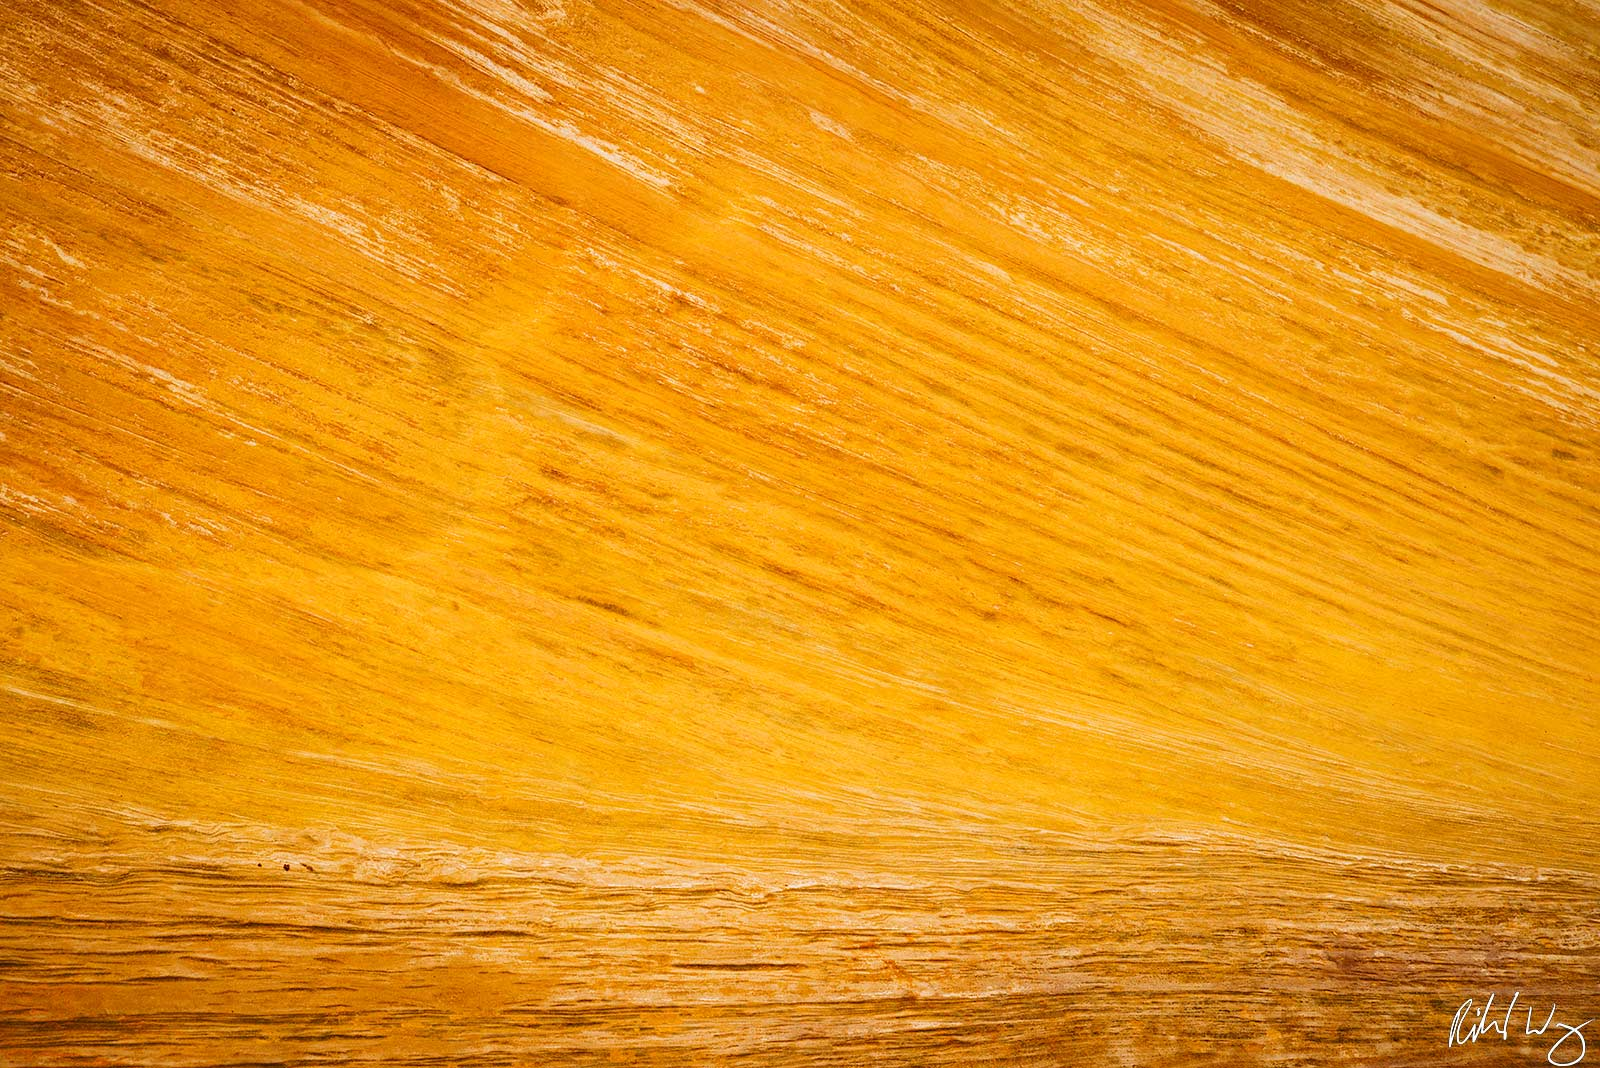 Striated Sandstone Abstract Patterns, Capitol Reef National Park Photo, photo